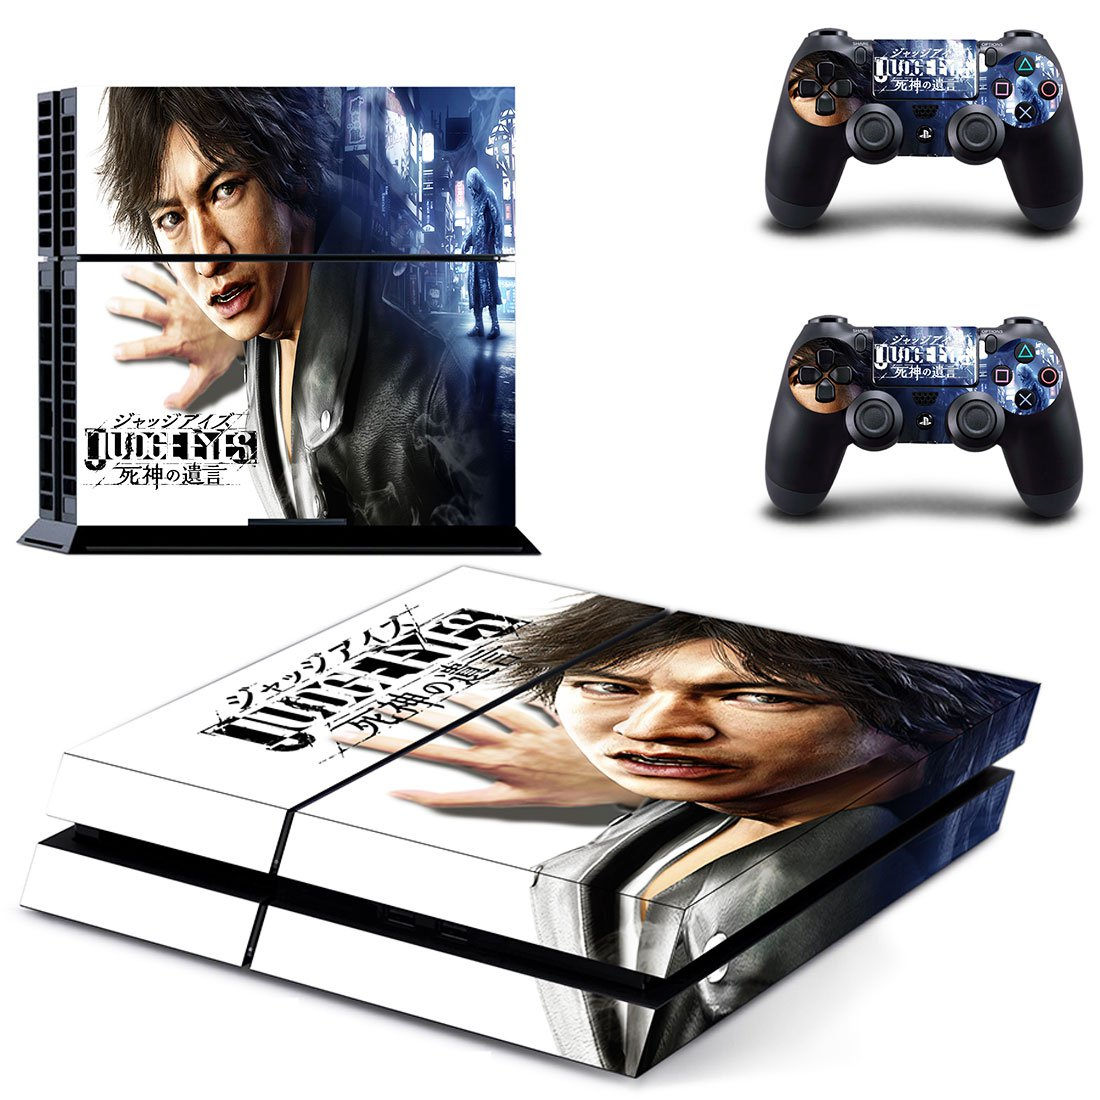 Judge Eyes skin decal for PS4 PlayStation 4 console and 2 controllers